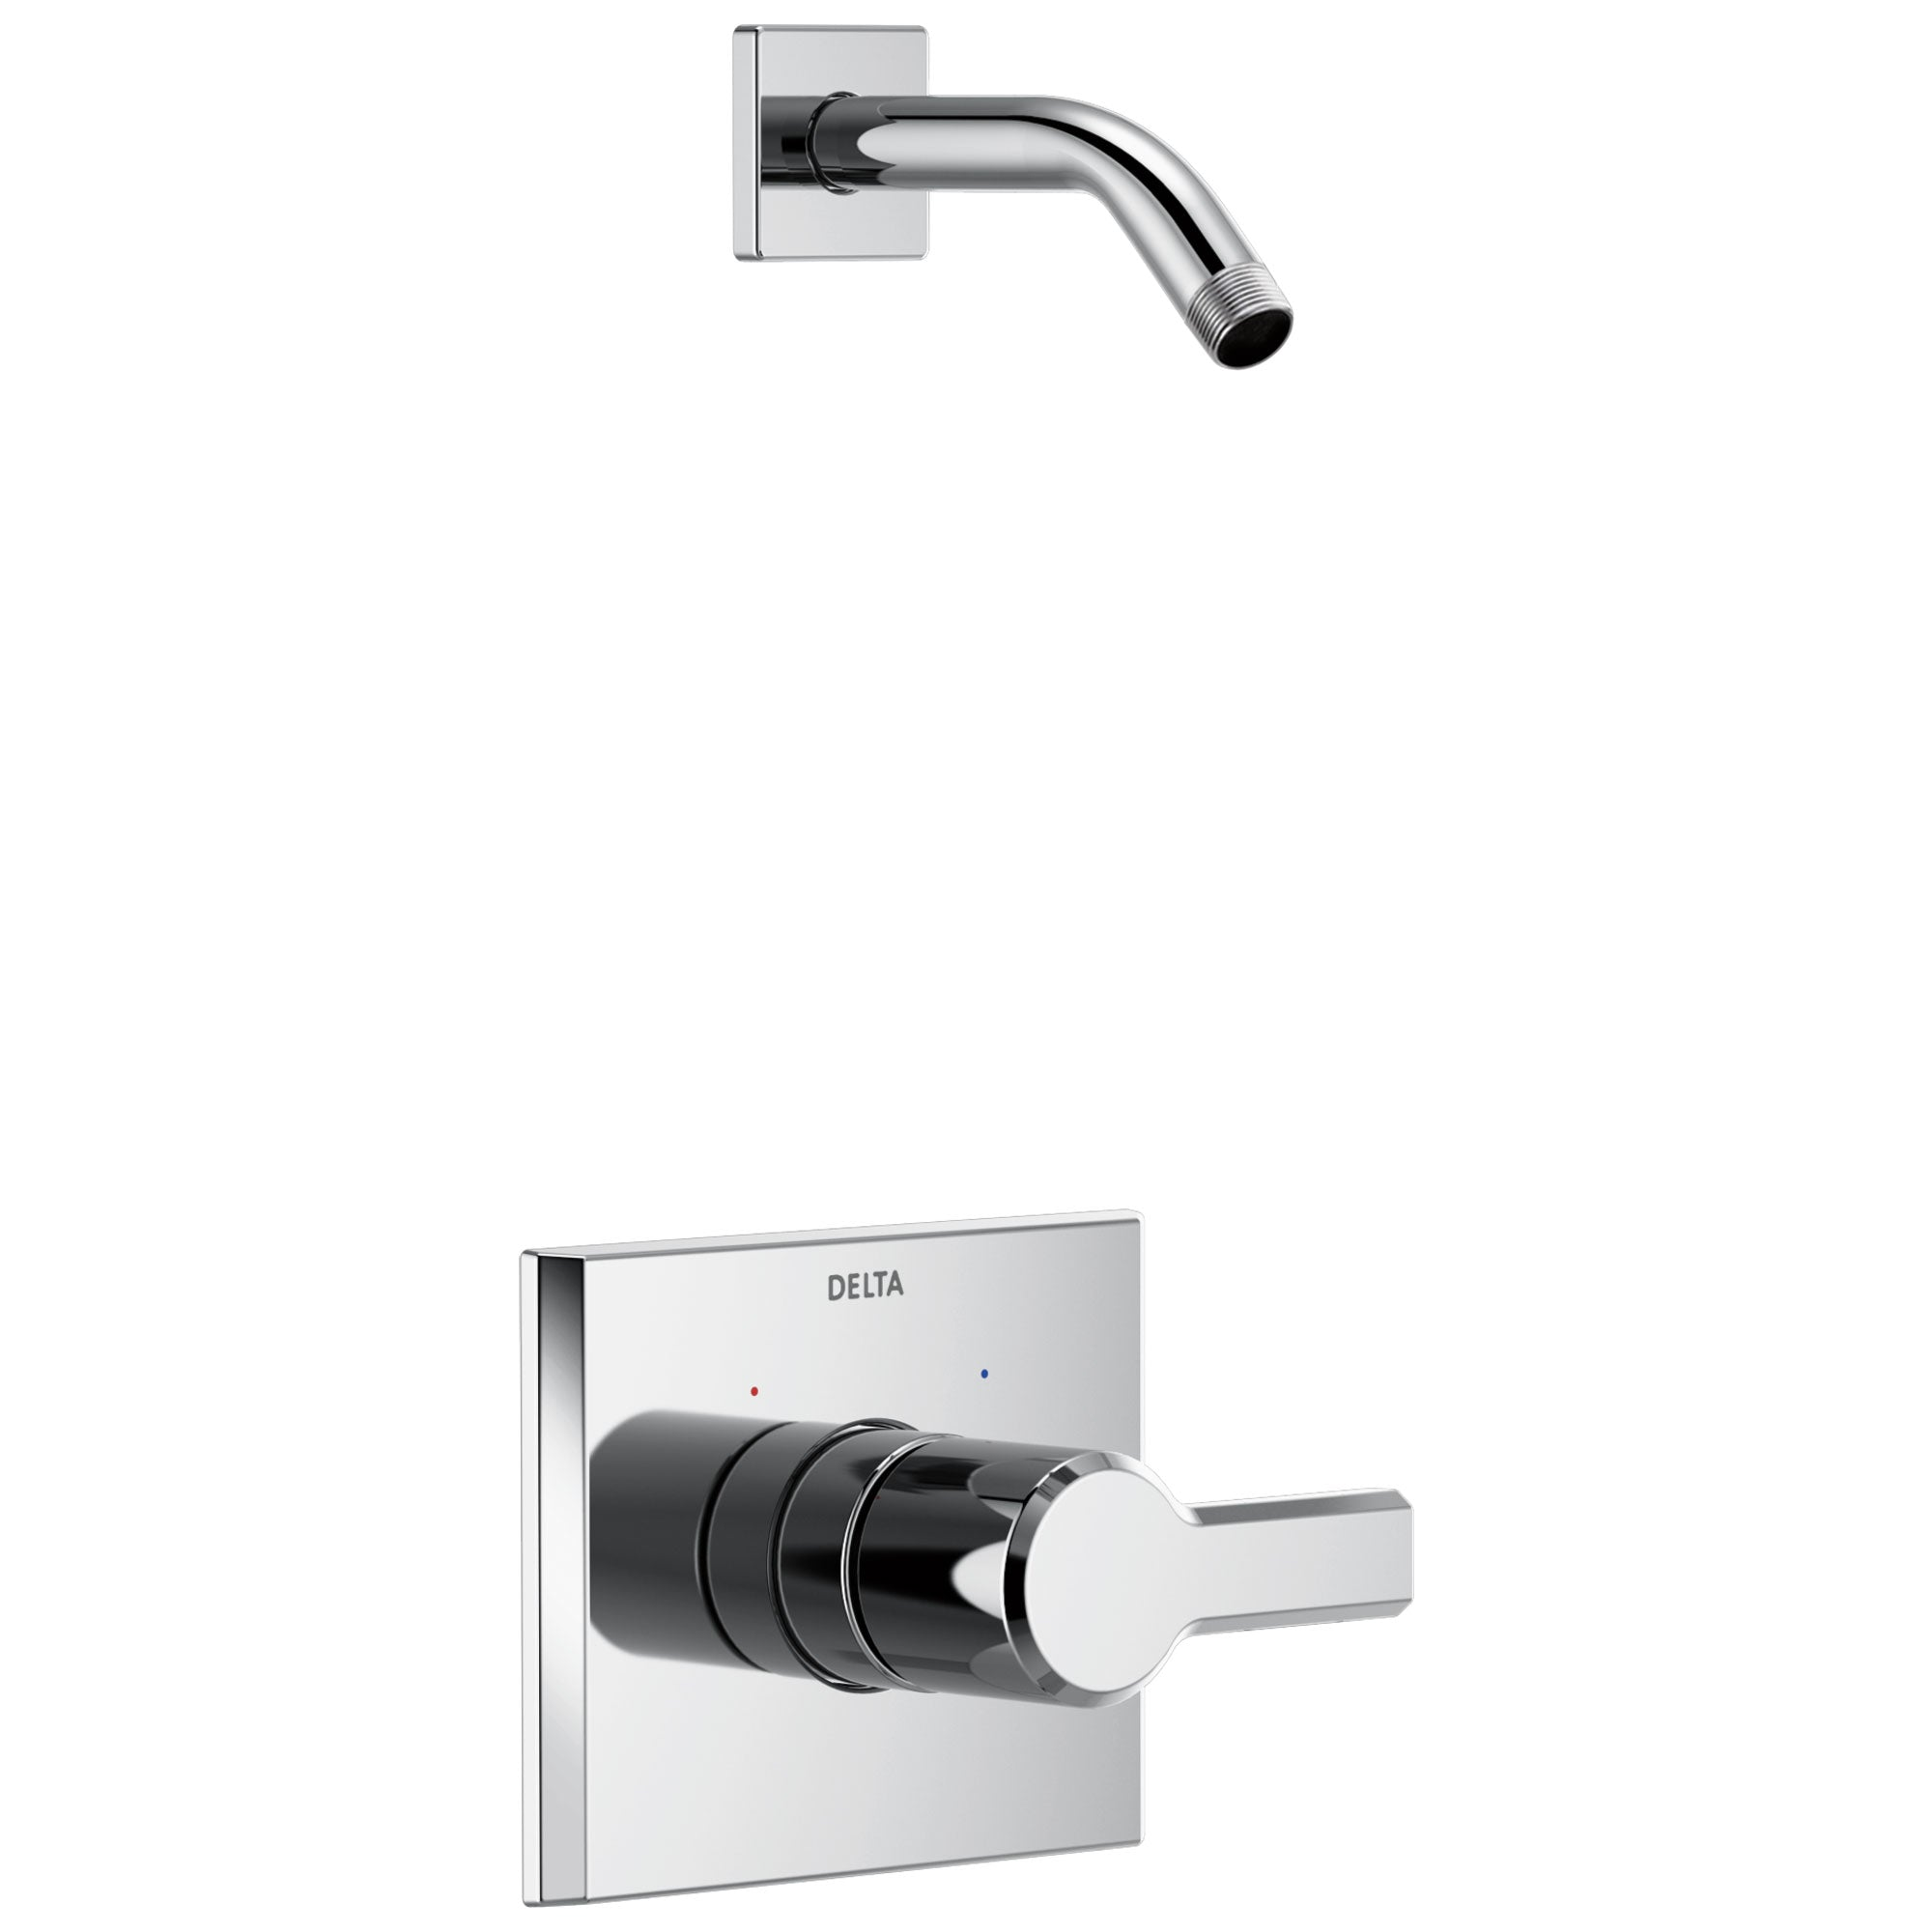 Delta Pivotal Chrome Finish 14 Series Shower only Faucet Less Showerhead Includes Single Handle, Cartridge, and Valve with Stops D3478V